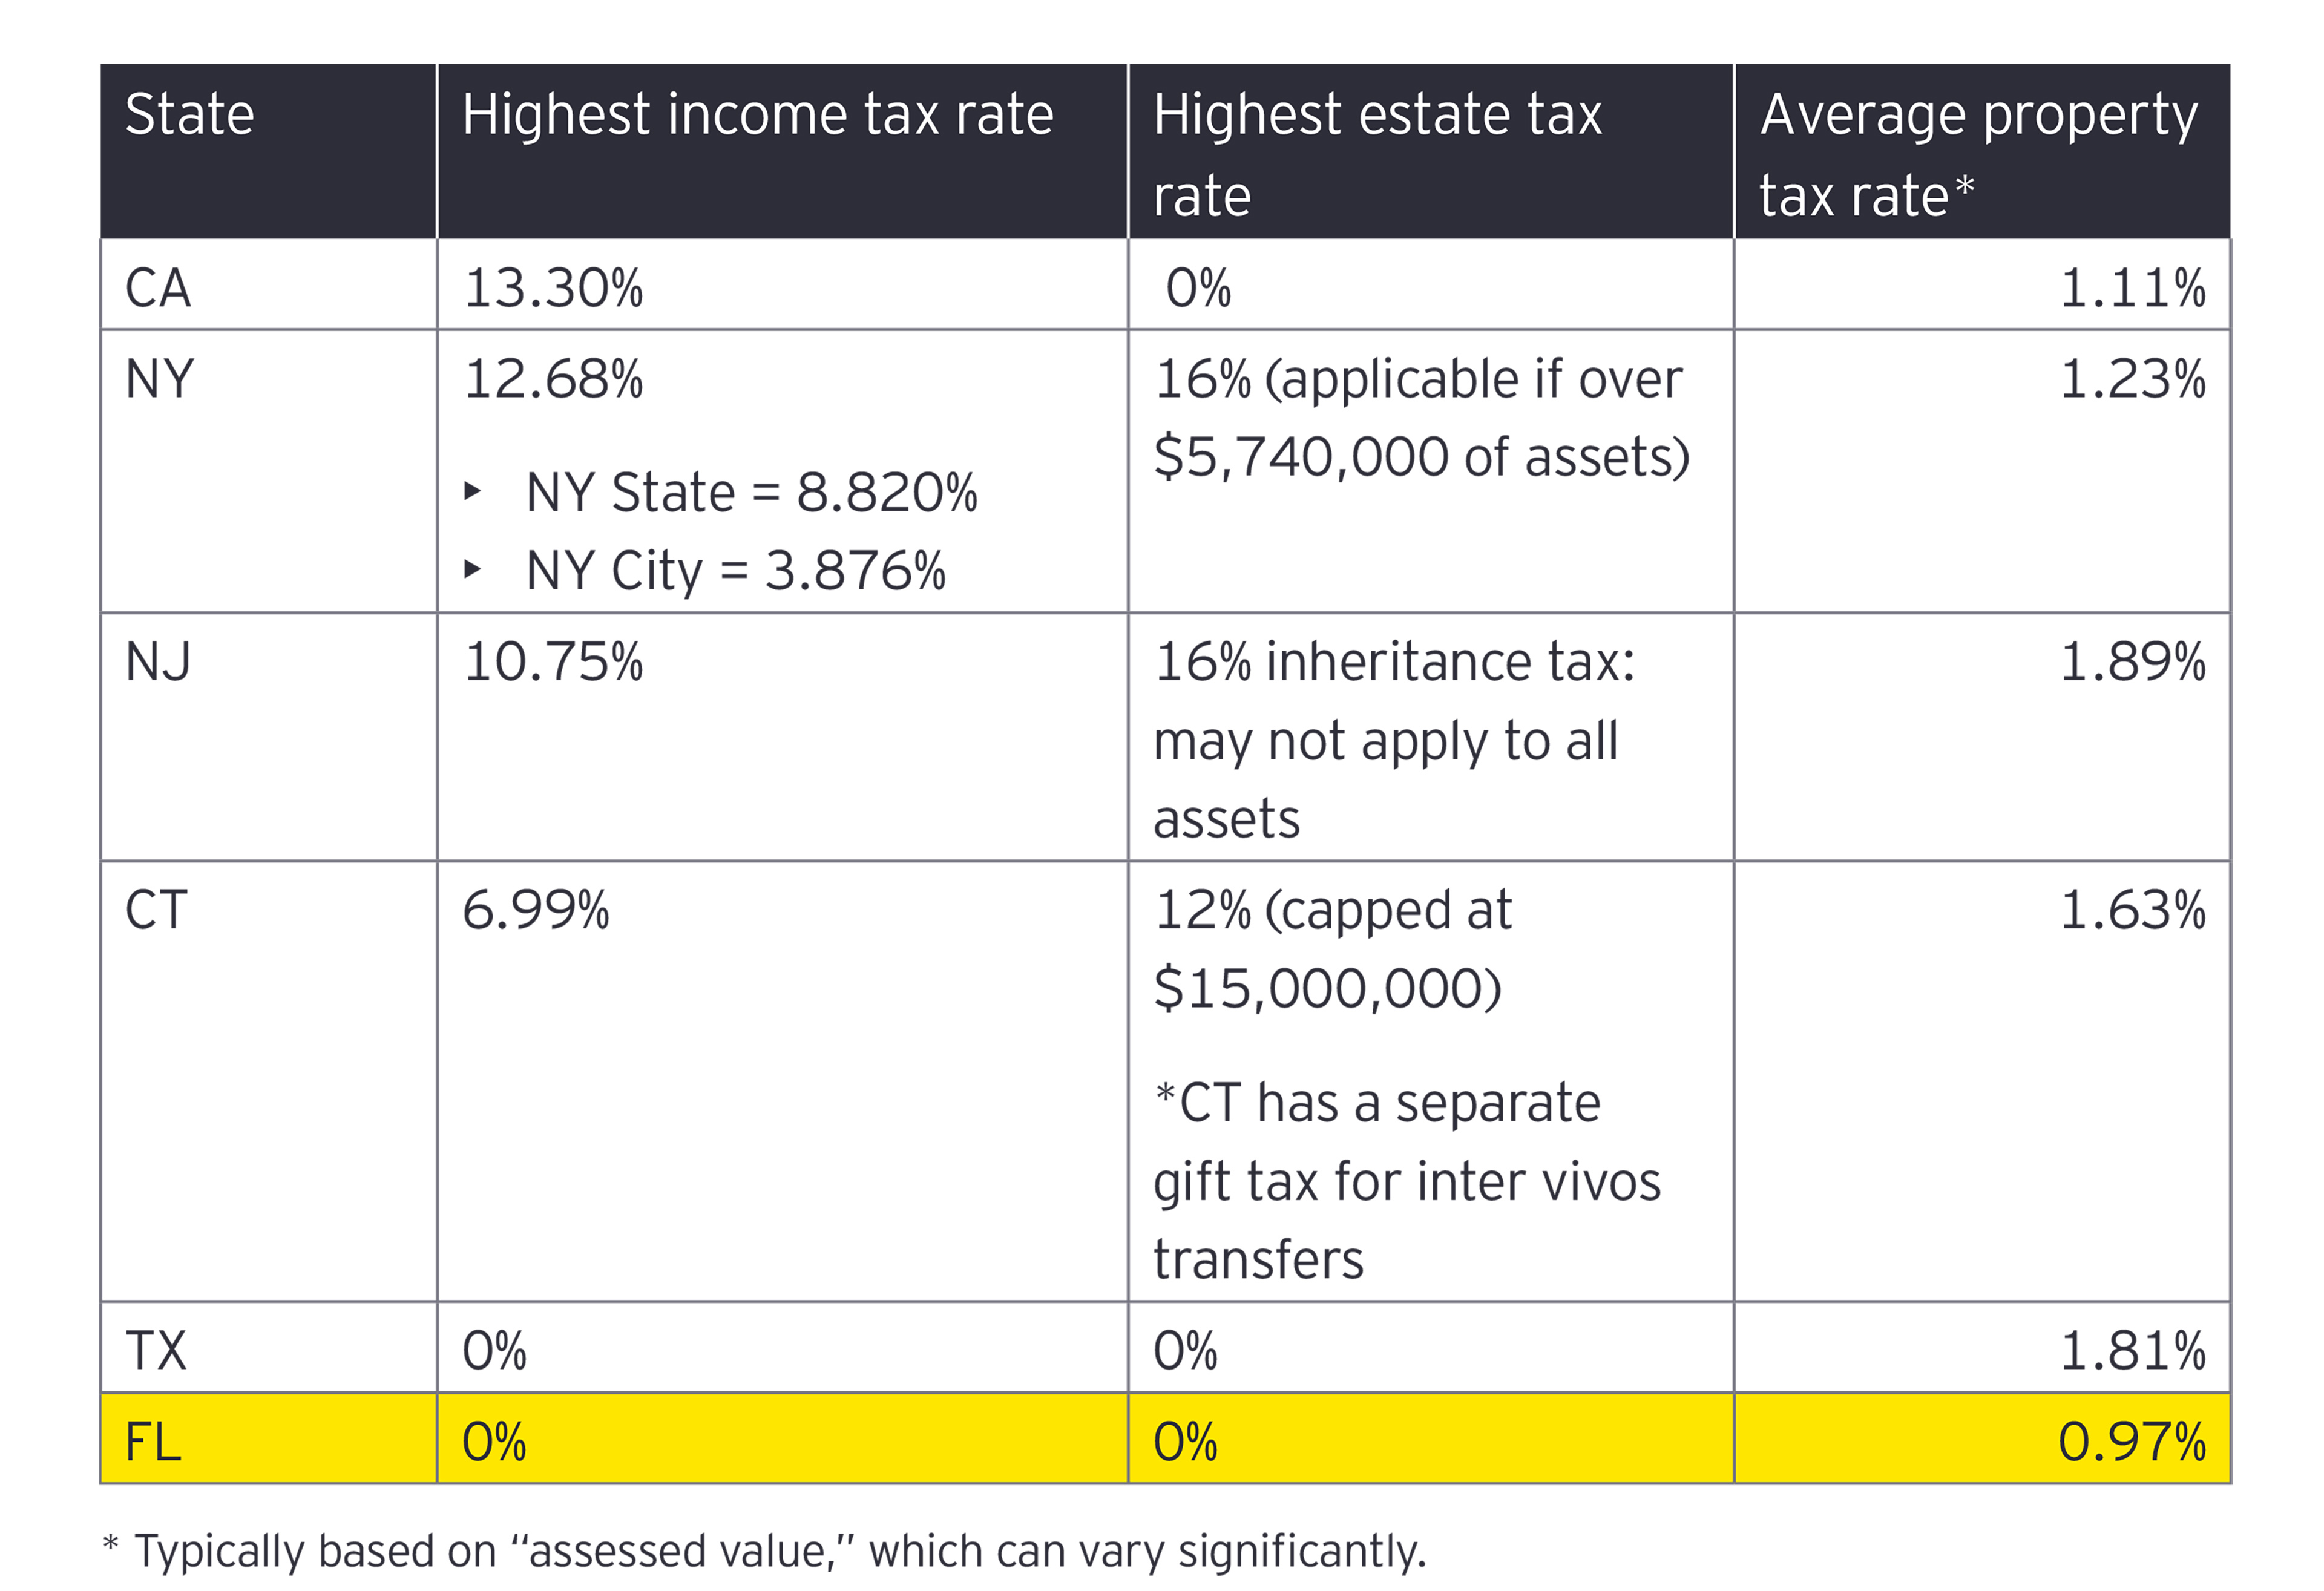 EY - Comparison of key tax rates